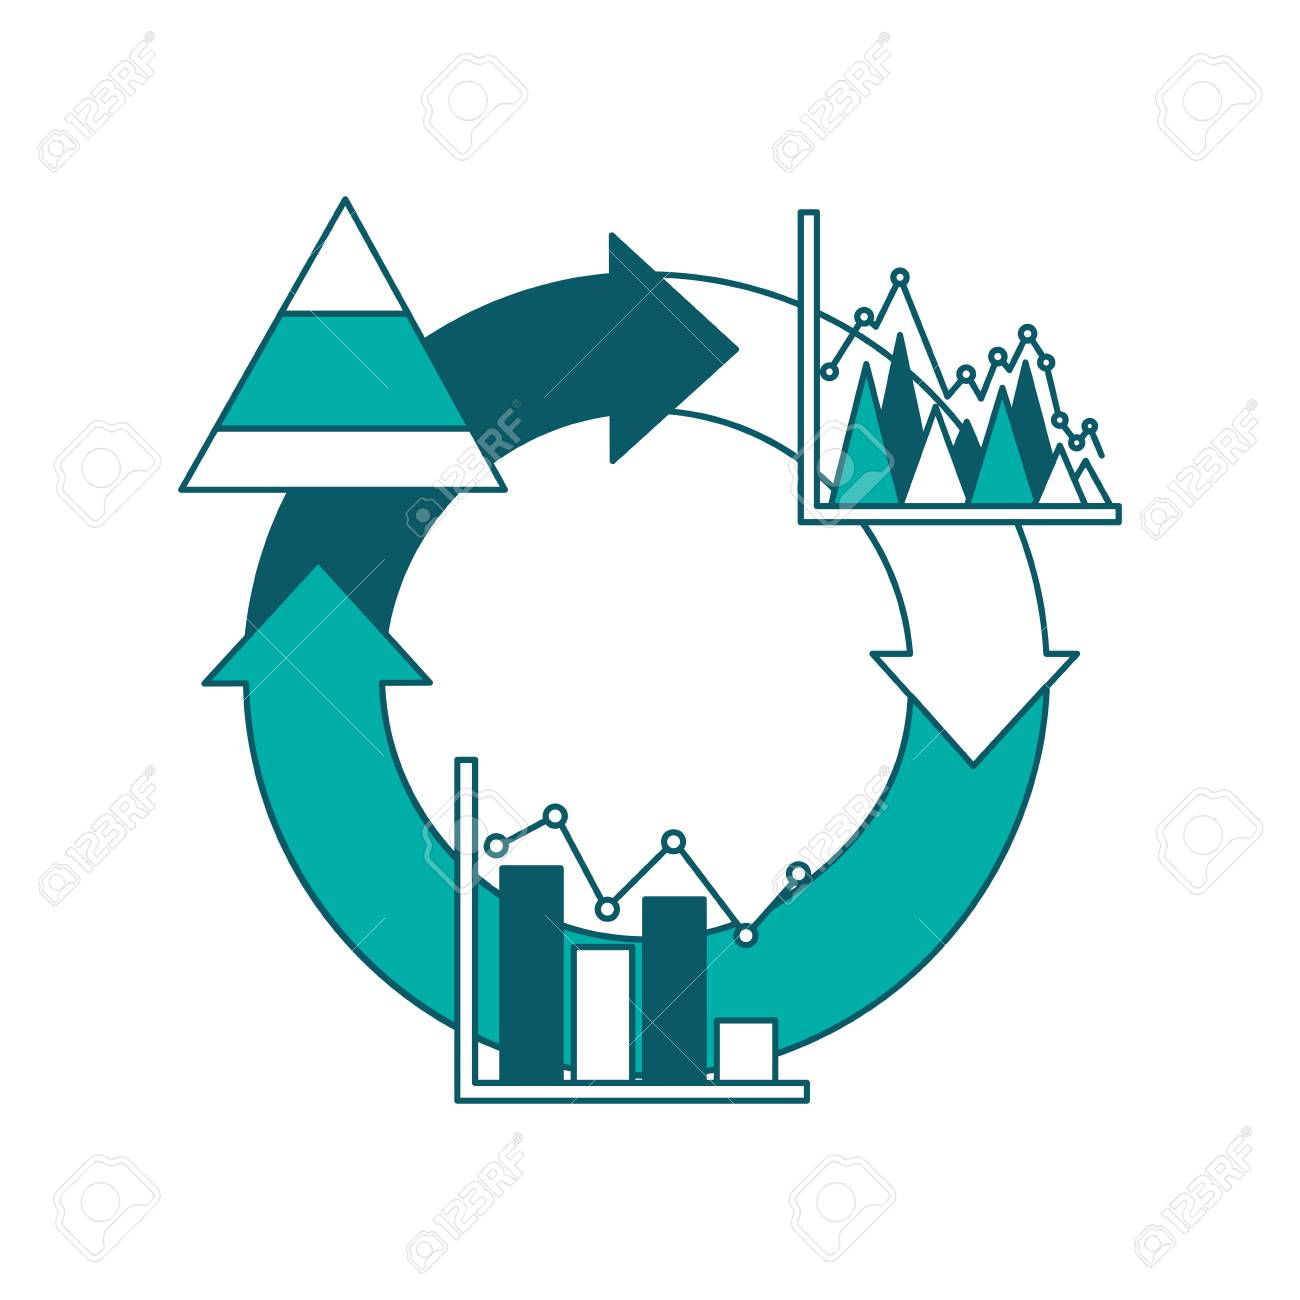 Cycle arrow diagram bar graph business theme vector illustration cycle arrow diagram bar graph business theme vector illustration green design stock vector 97909623 ccuart Images